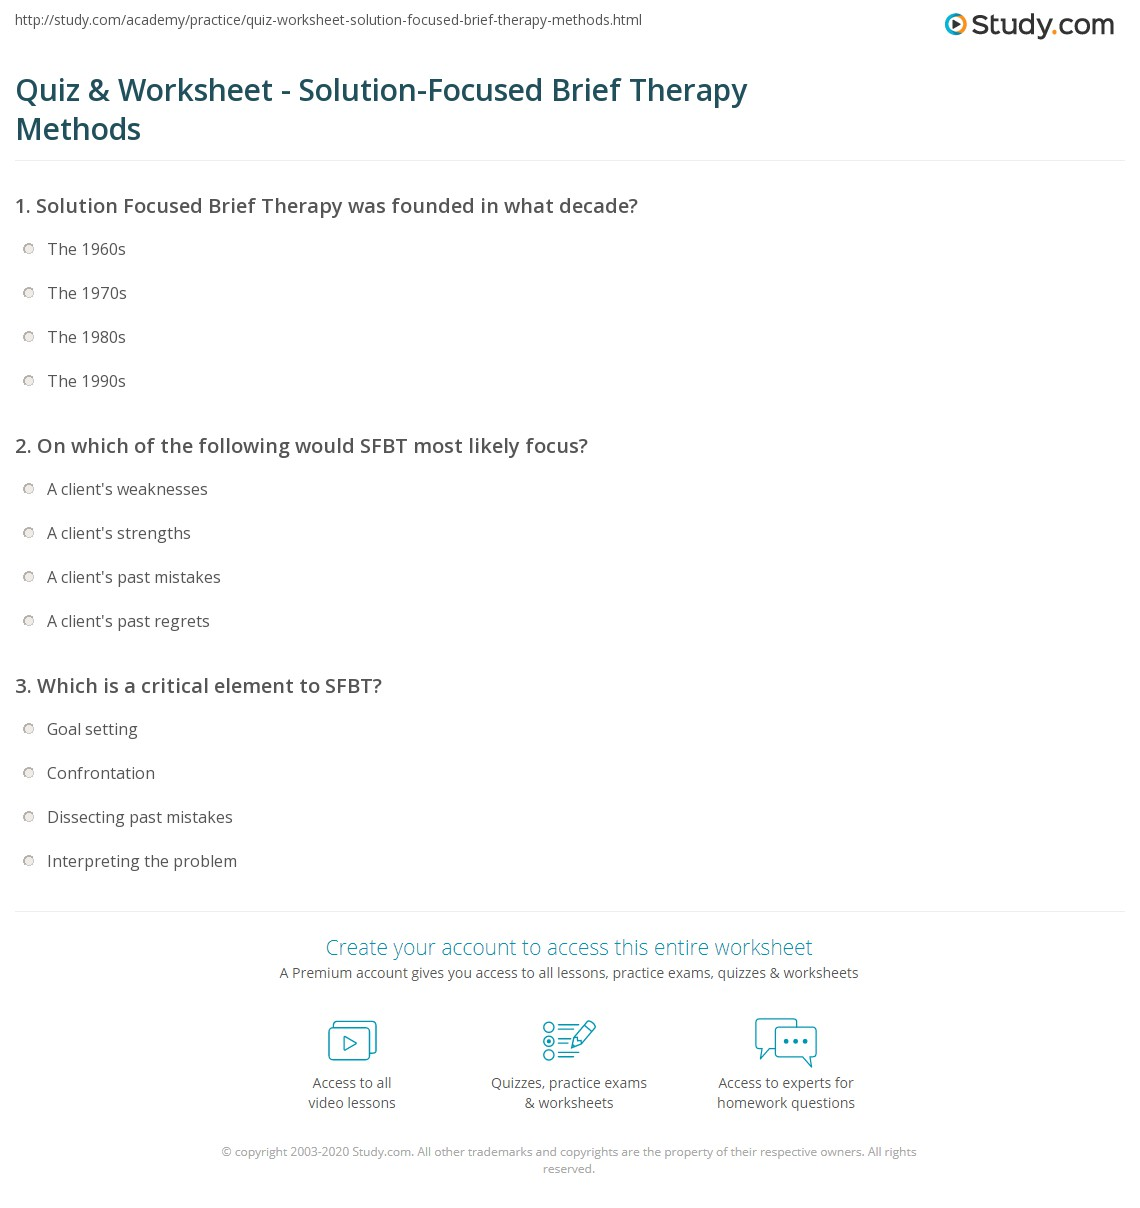 worksheet Solution Focused Brief Therapy Worksheets quiz worksheet solution focused brief therapy methods study com print what is techniques training worksheet